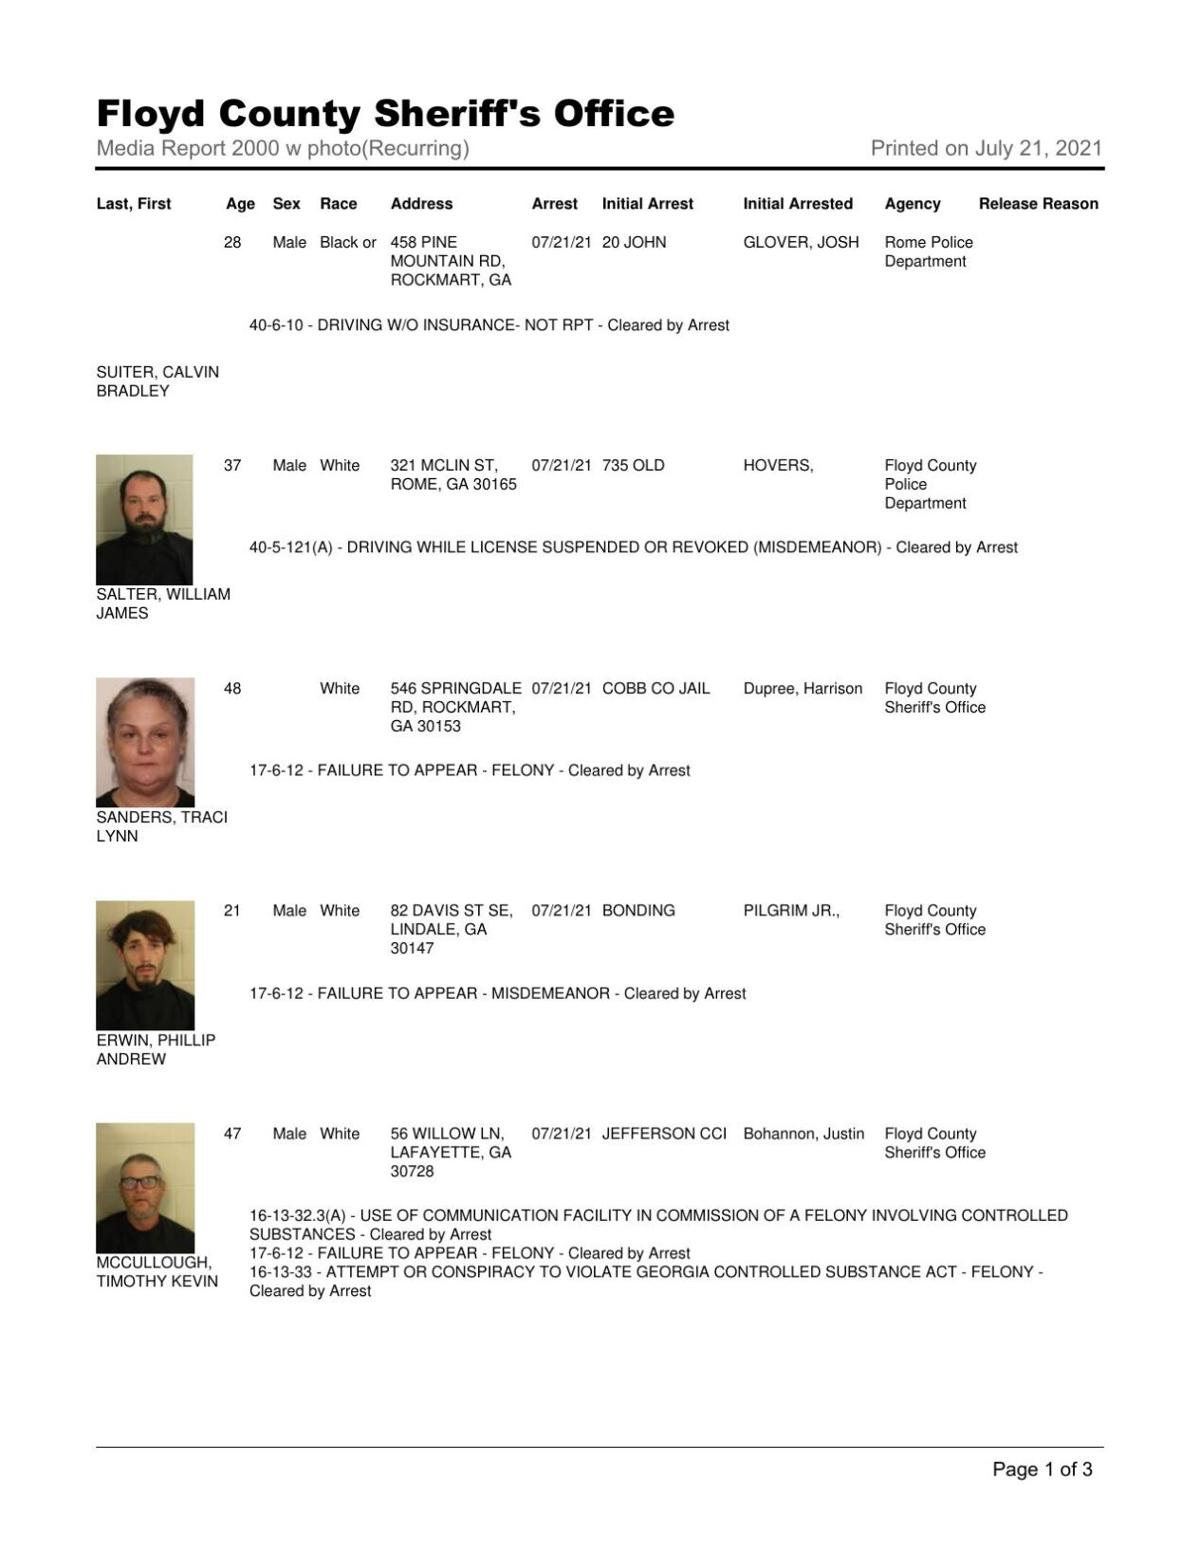 Floyd County Jail report for 8 pm Wednesday, July 21